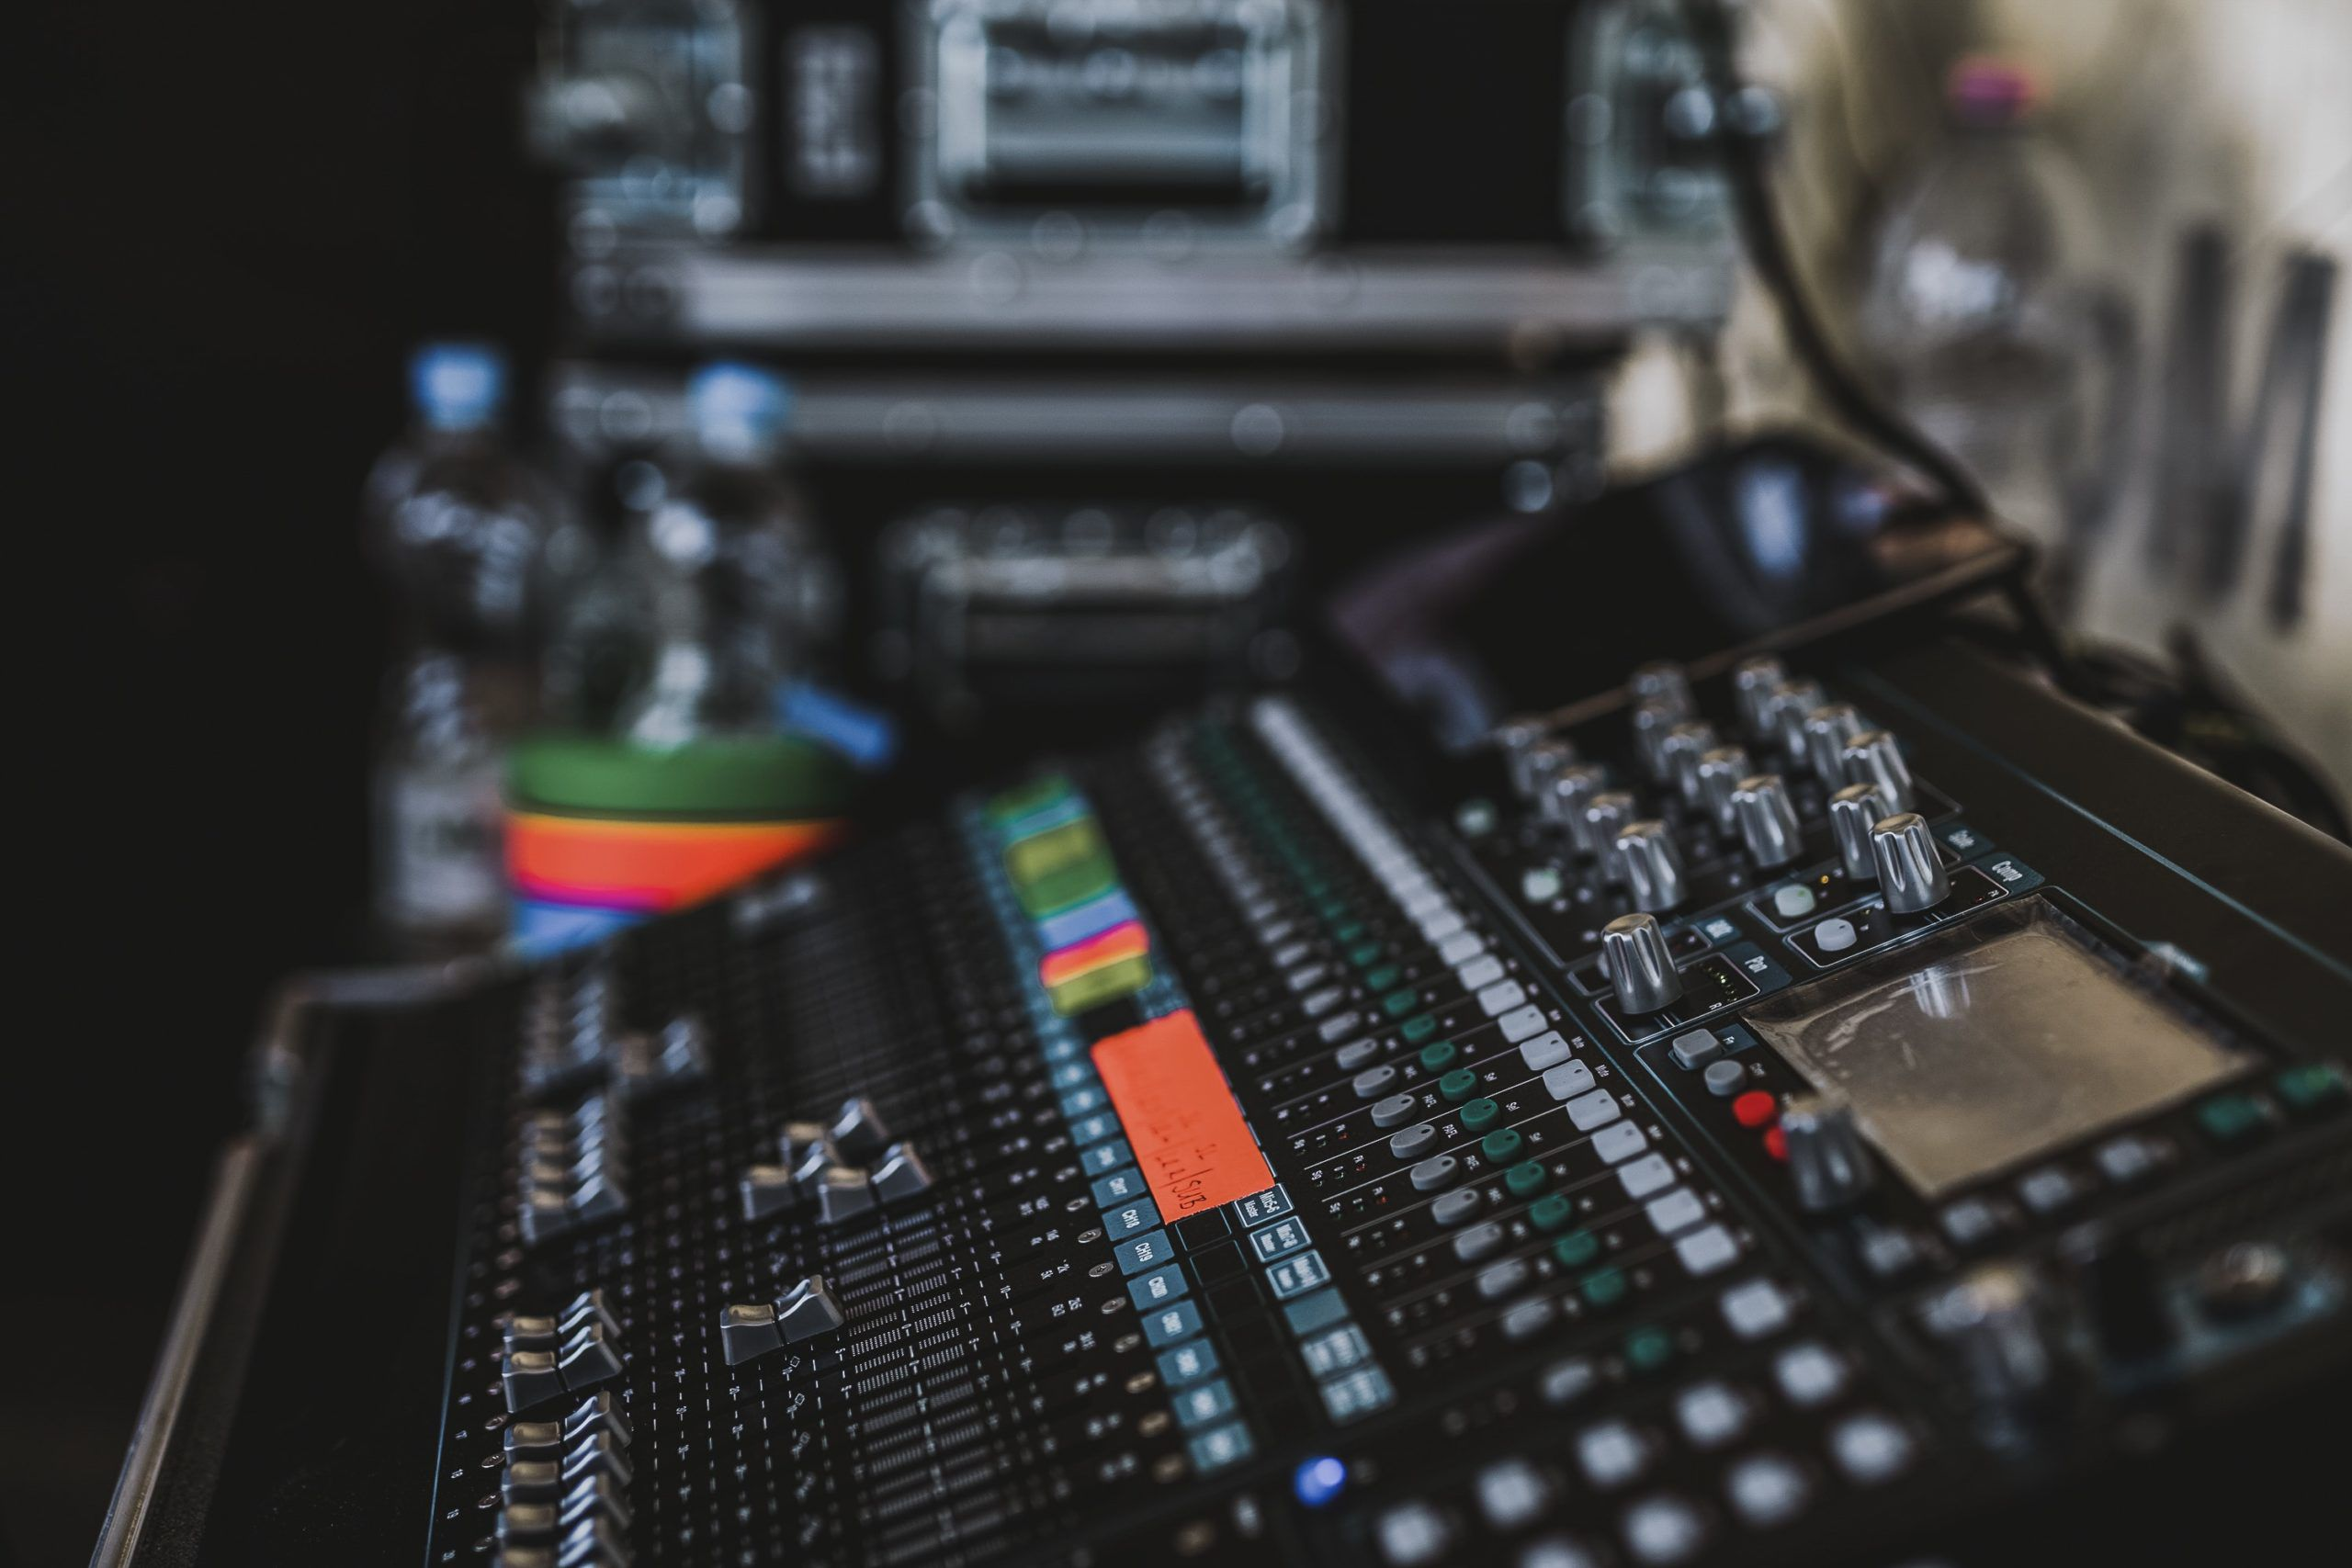 audio-audio-mixer-controls-electronics-690779